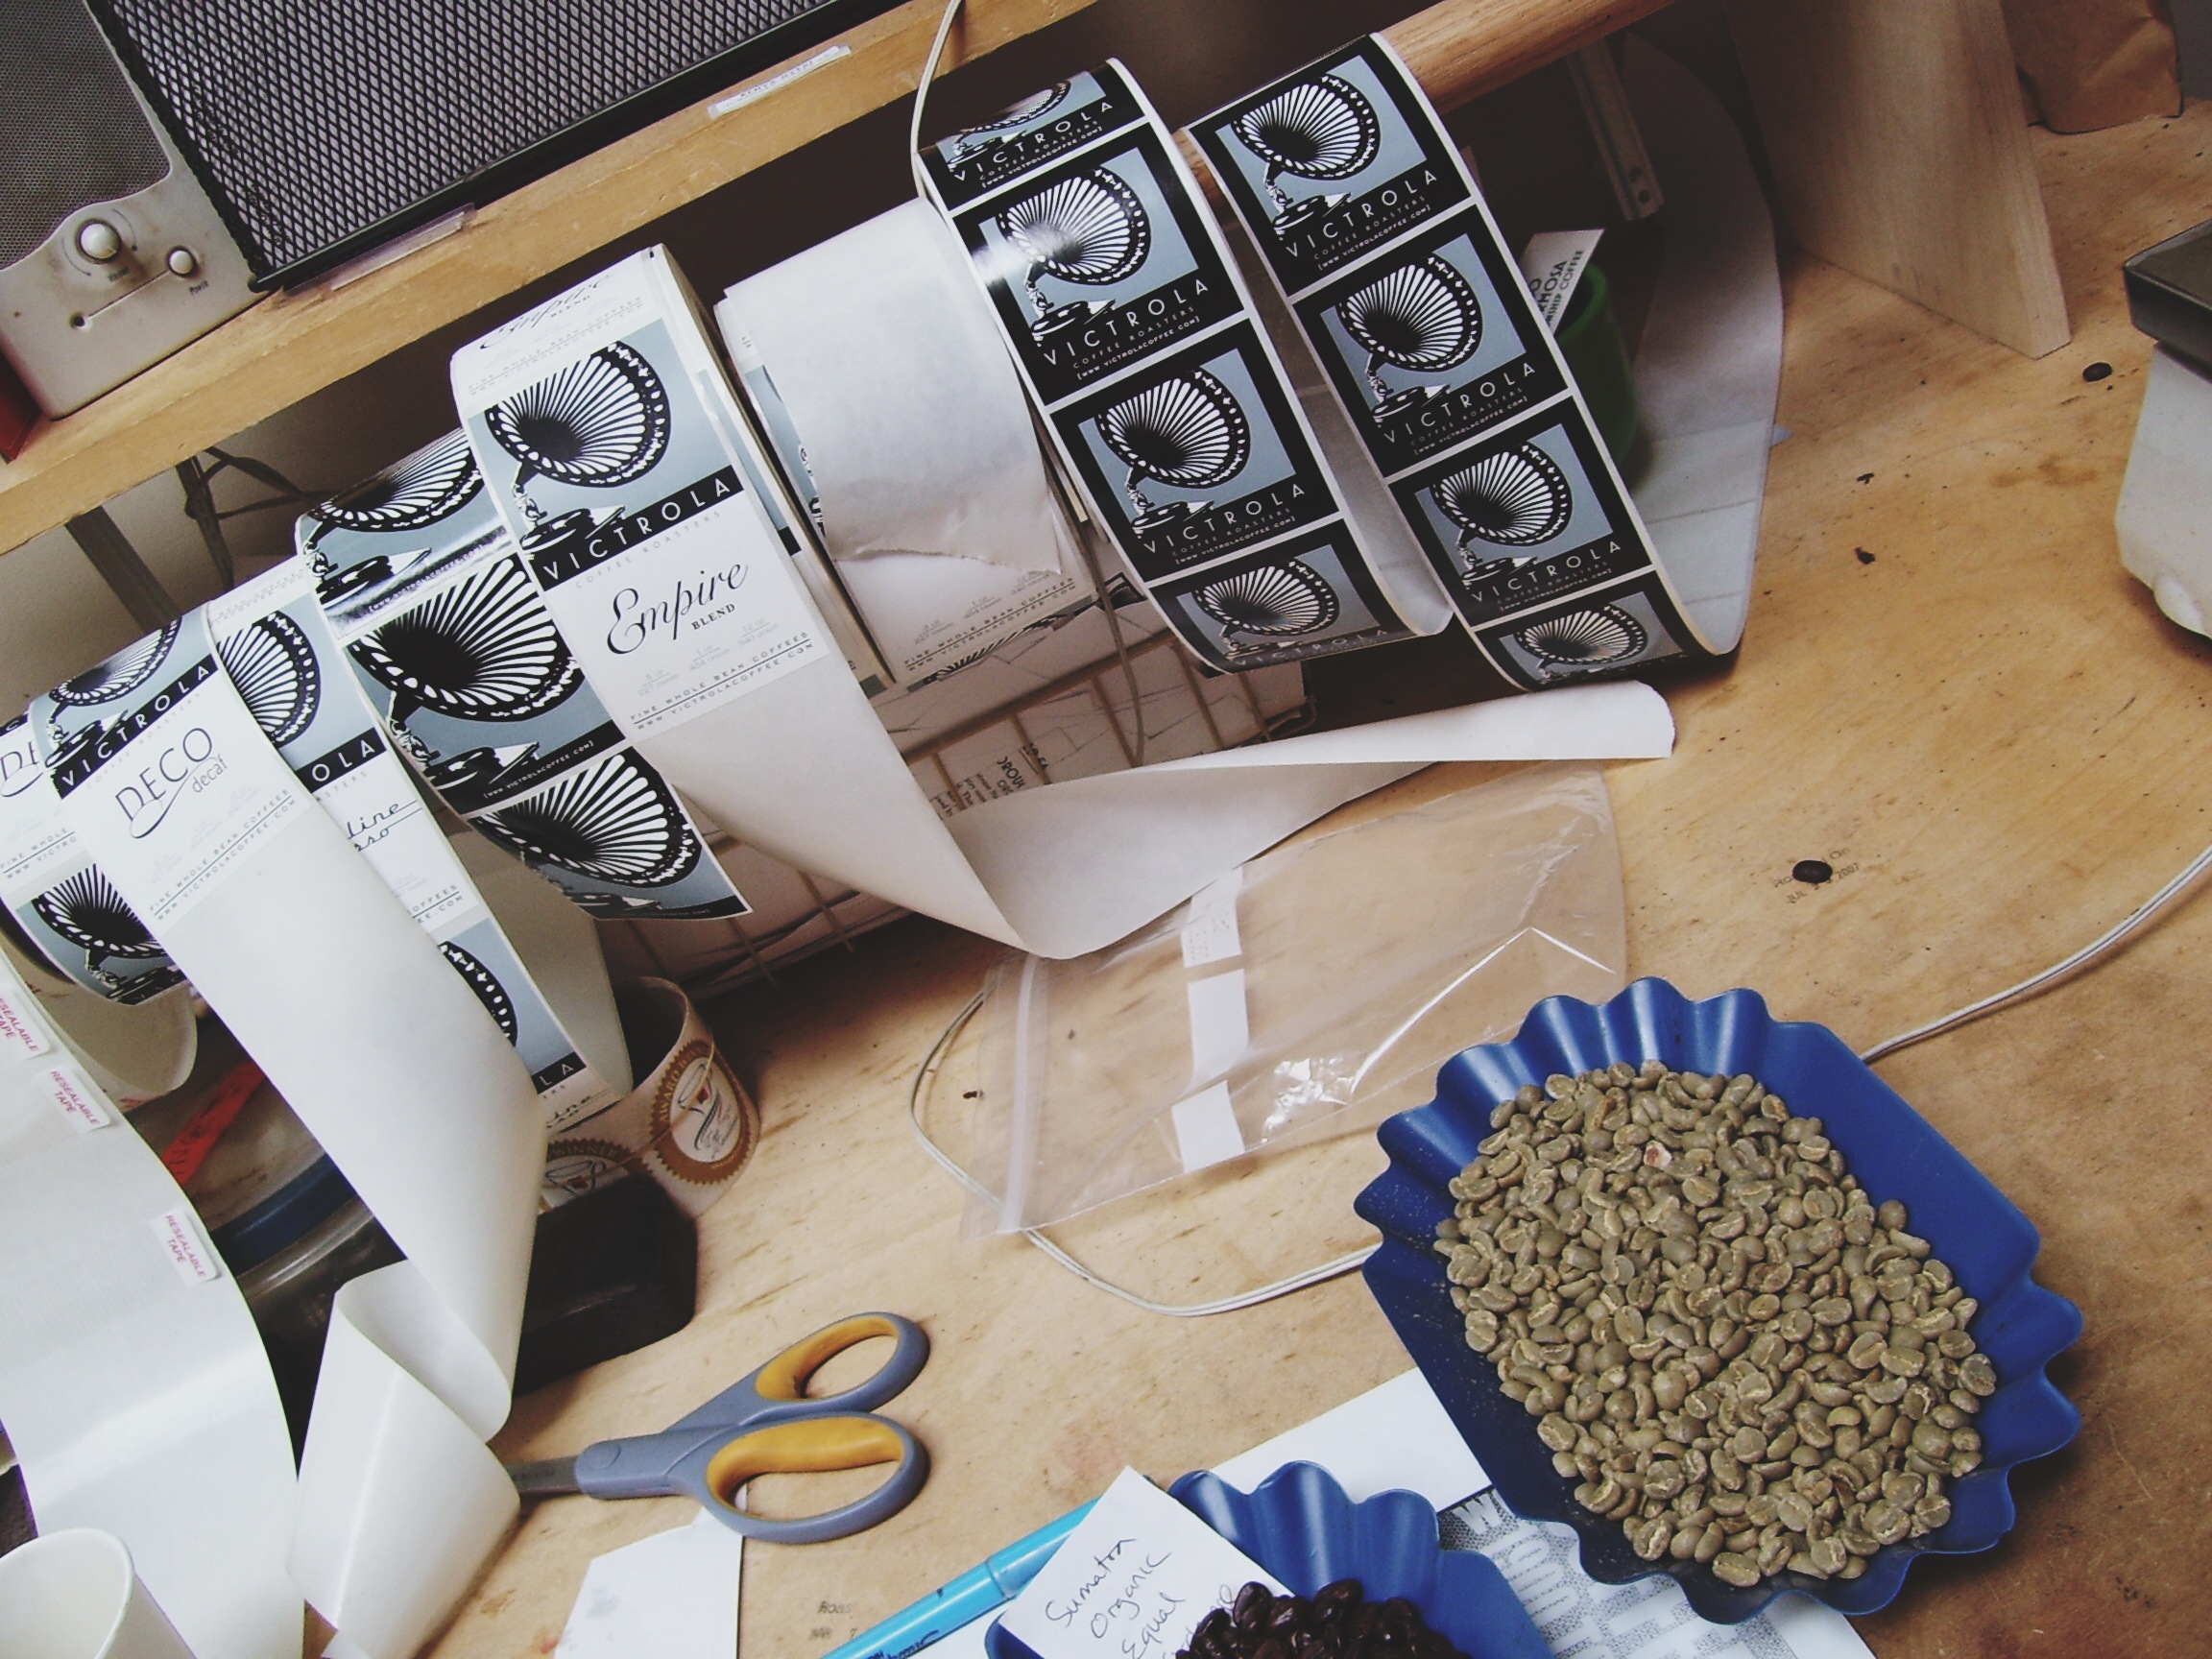 To learn more about this event and coffee cupping, see the event report  here .